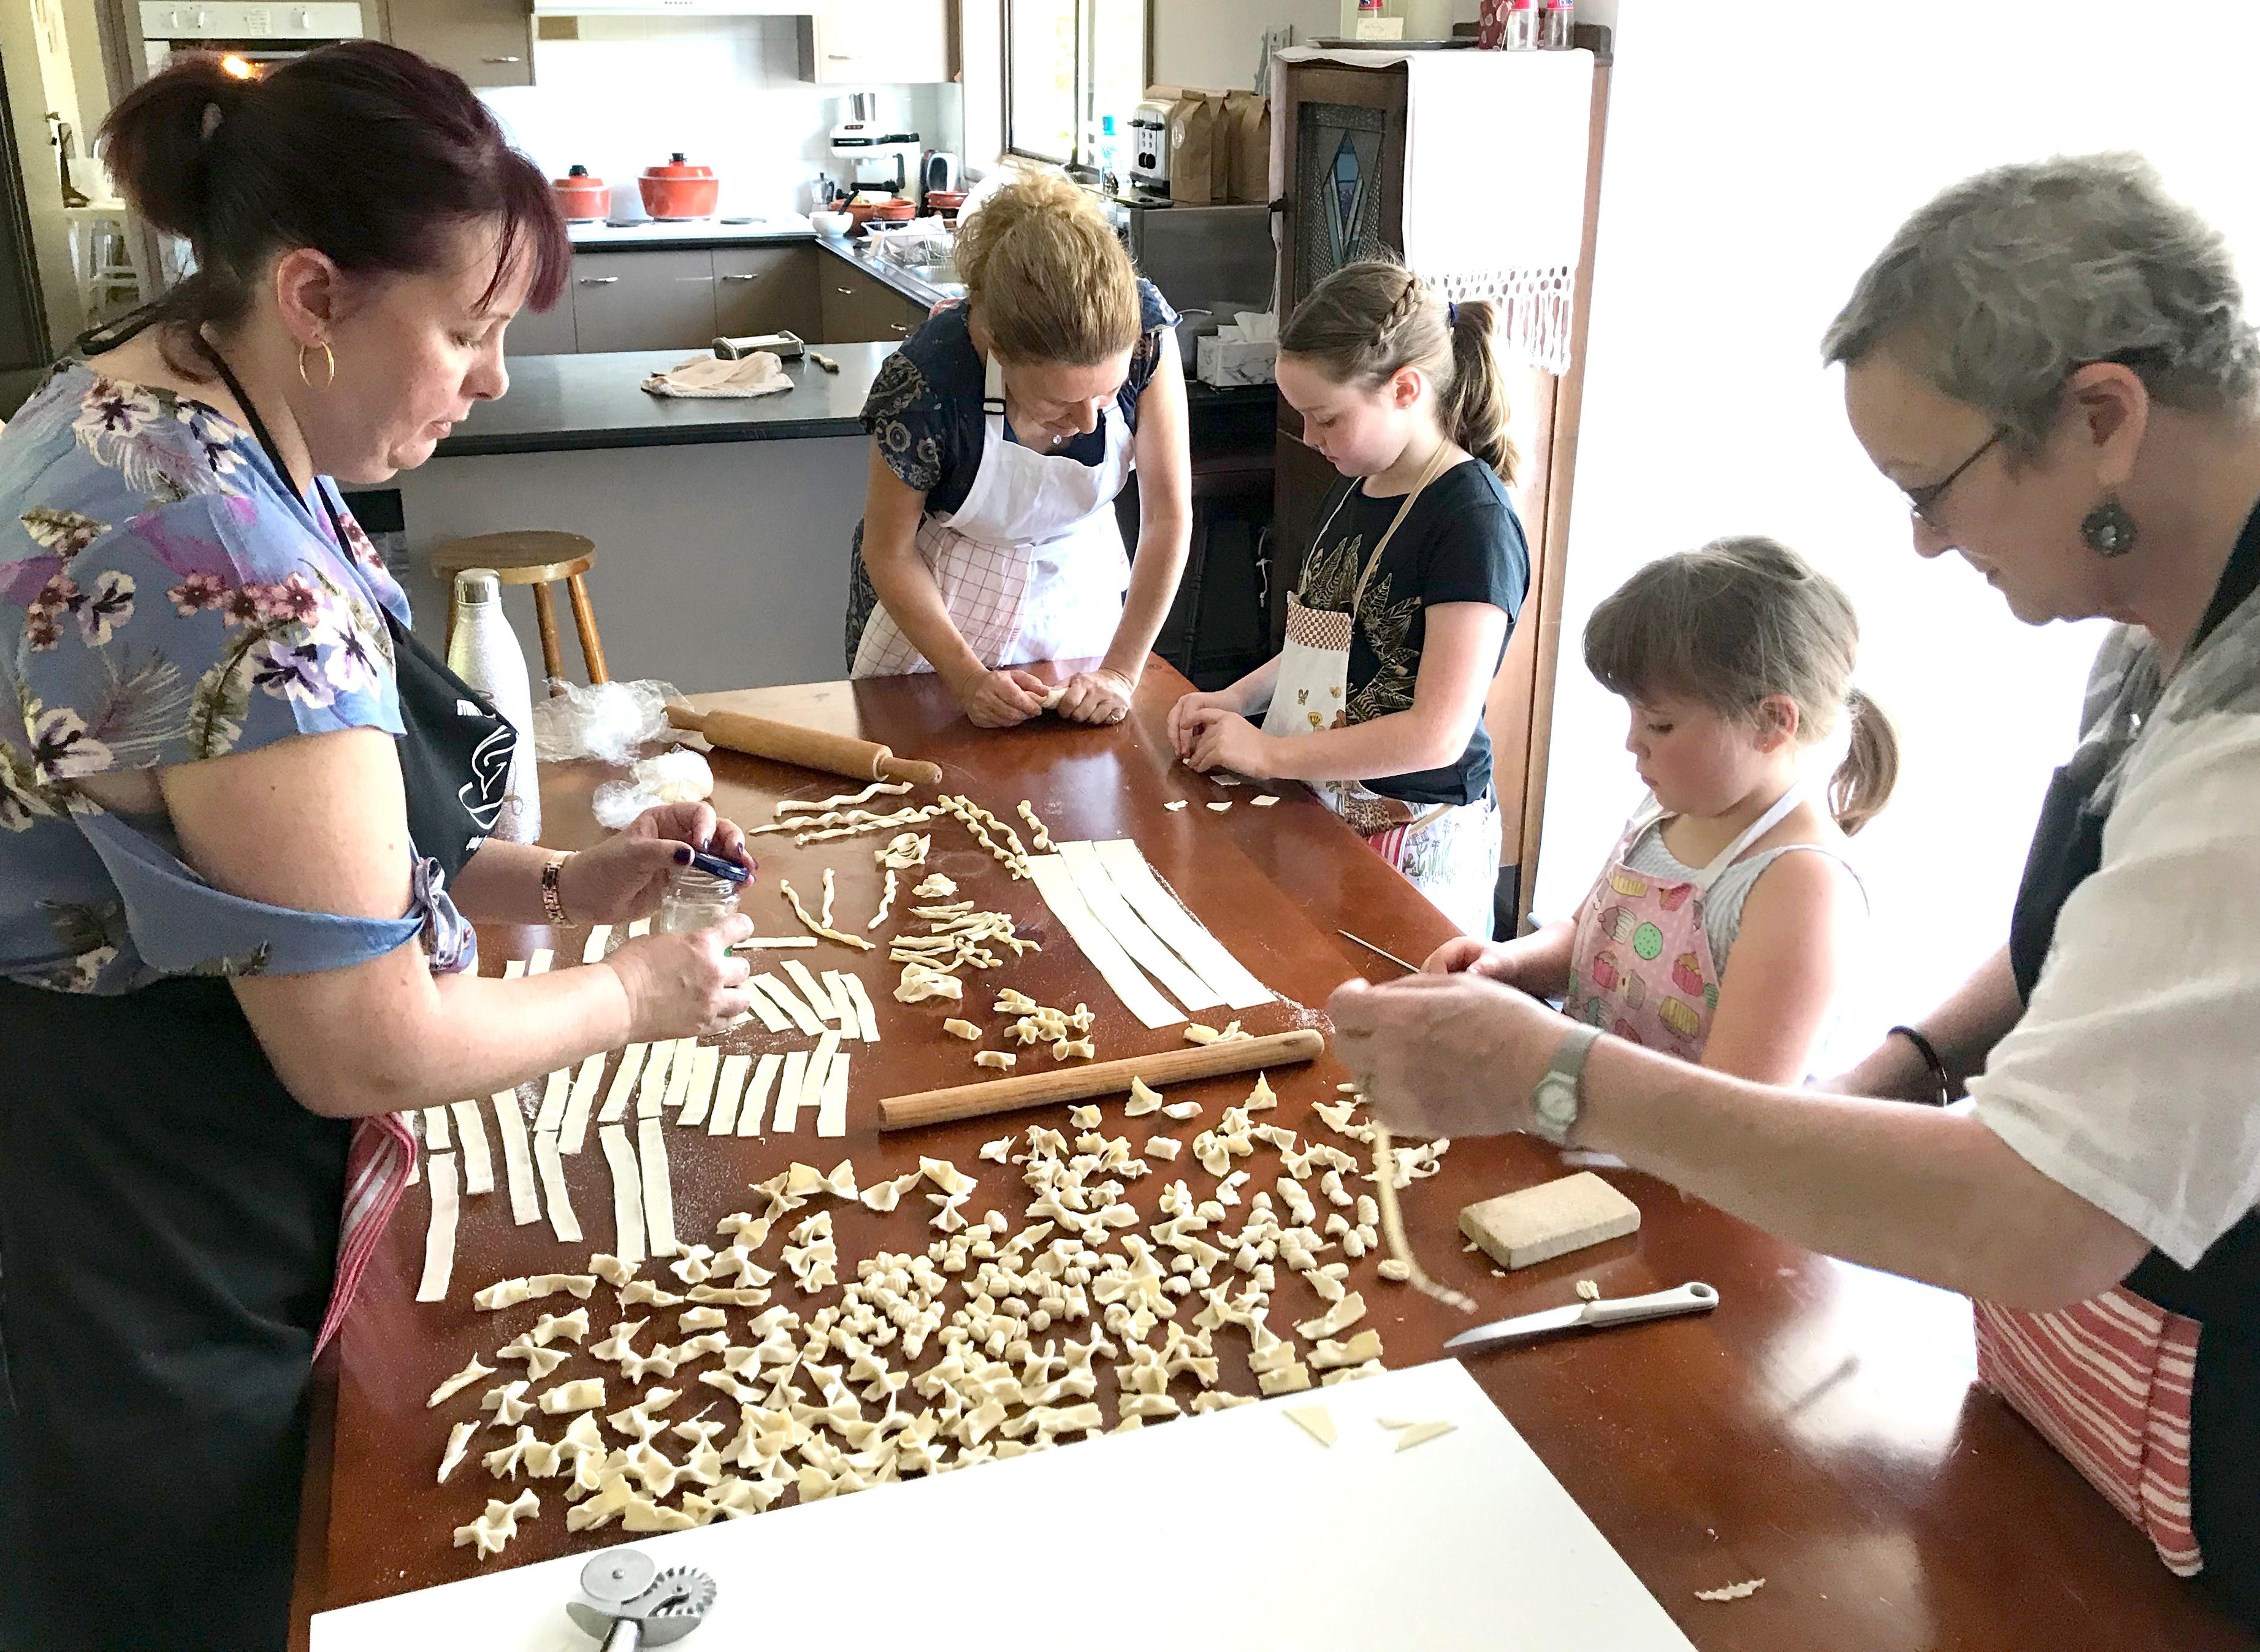 Kids Pasta Making Class - hands on fun at your house - Sydney Tourism